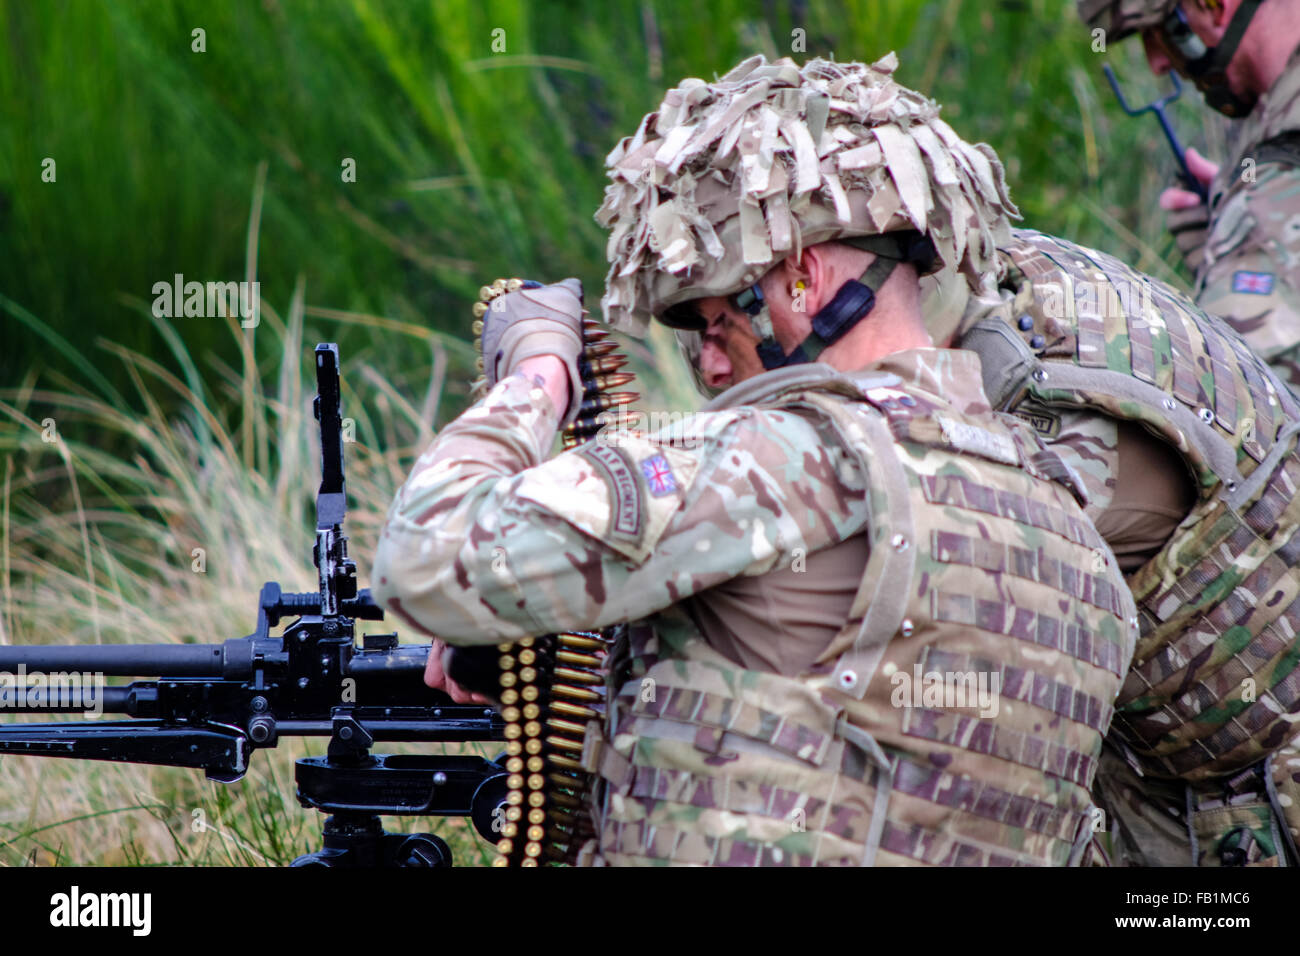 A Royal Air Force RAF regiment soldier loads a machine gun during a drill at Fort George, Scotland. - Stock Image